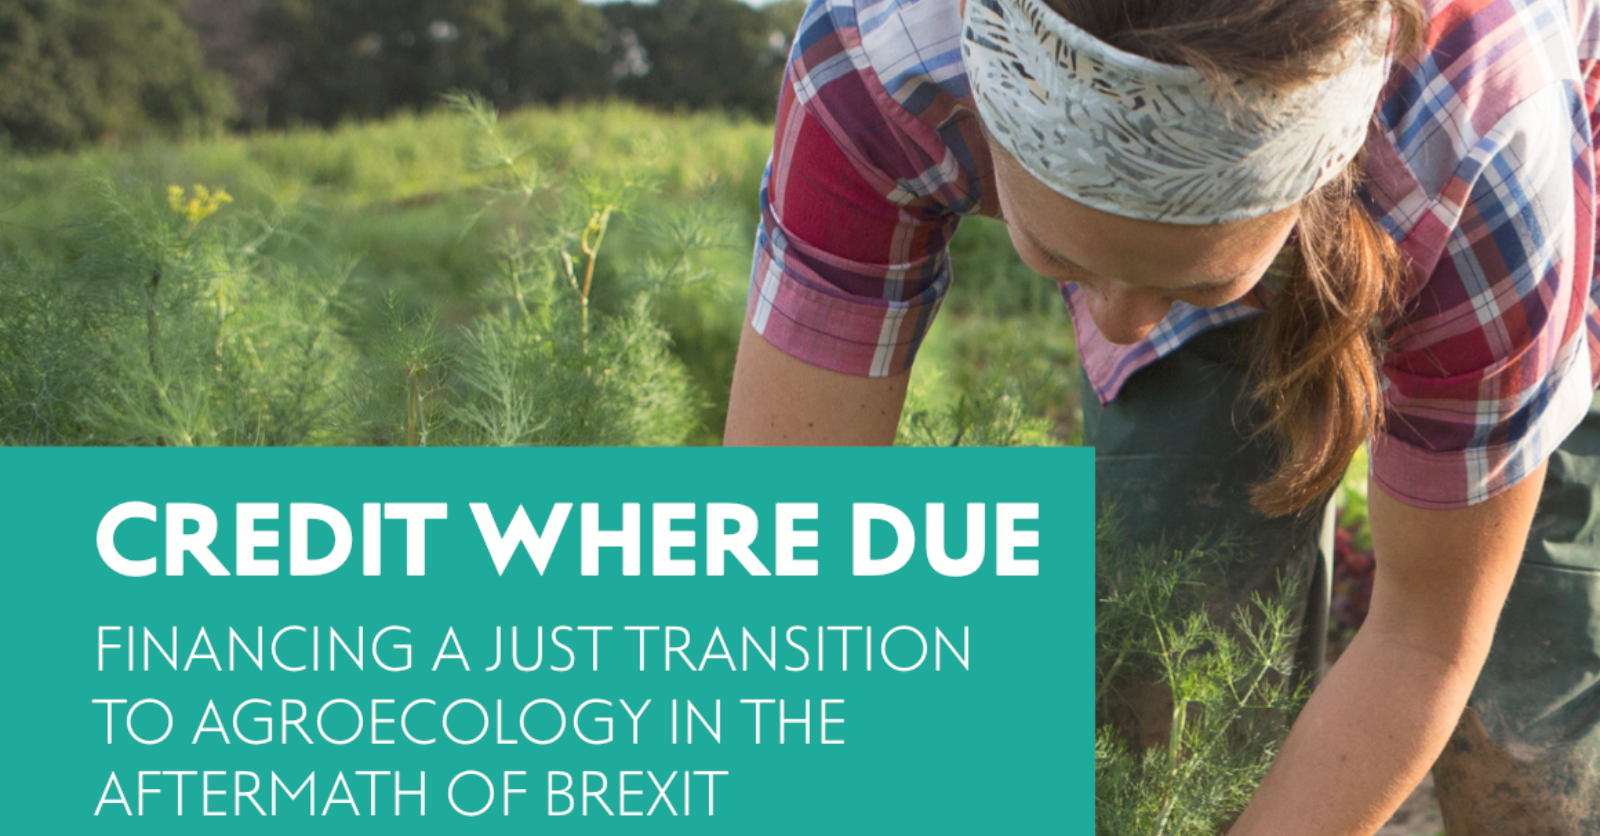 Credit Where Due: Financing a Just Transition to Agroecology in the Aftermath of Brexit